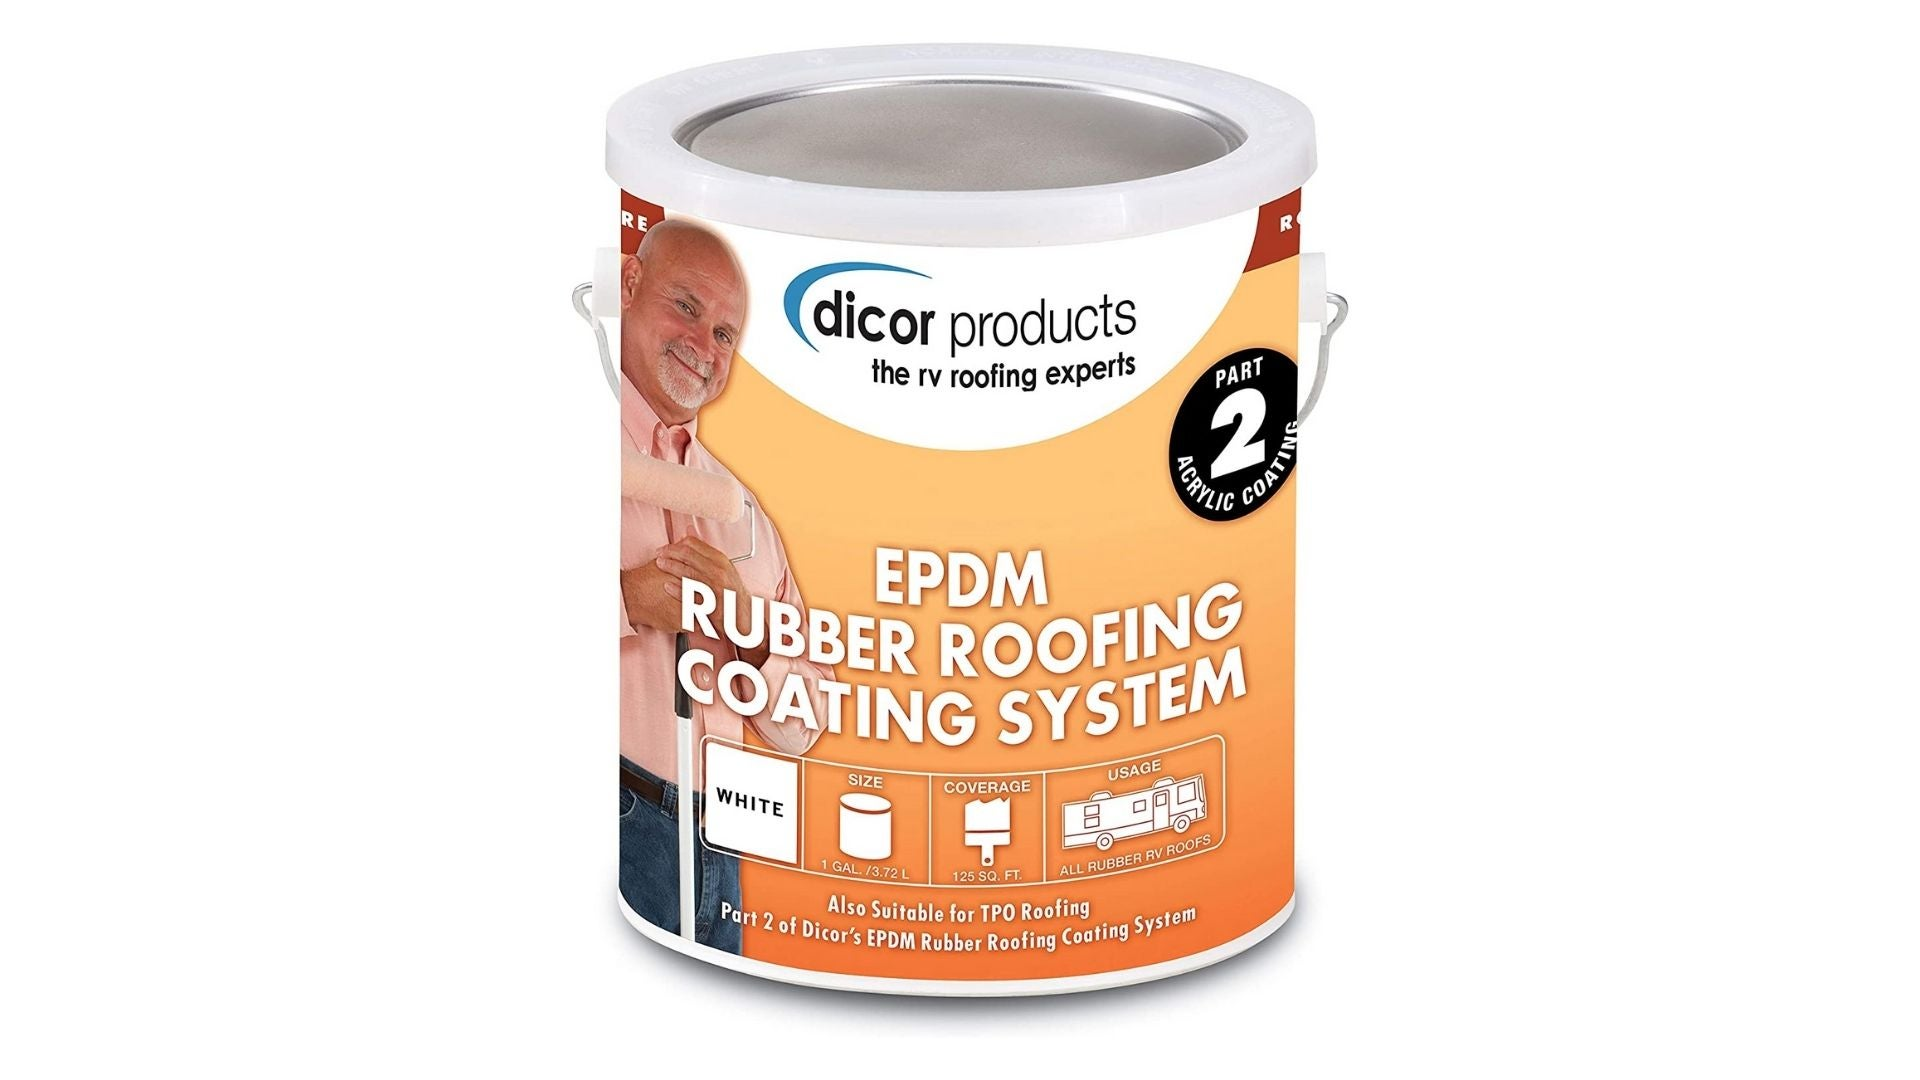 Dicor White EPDM Rubber Roof Coating